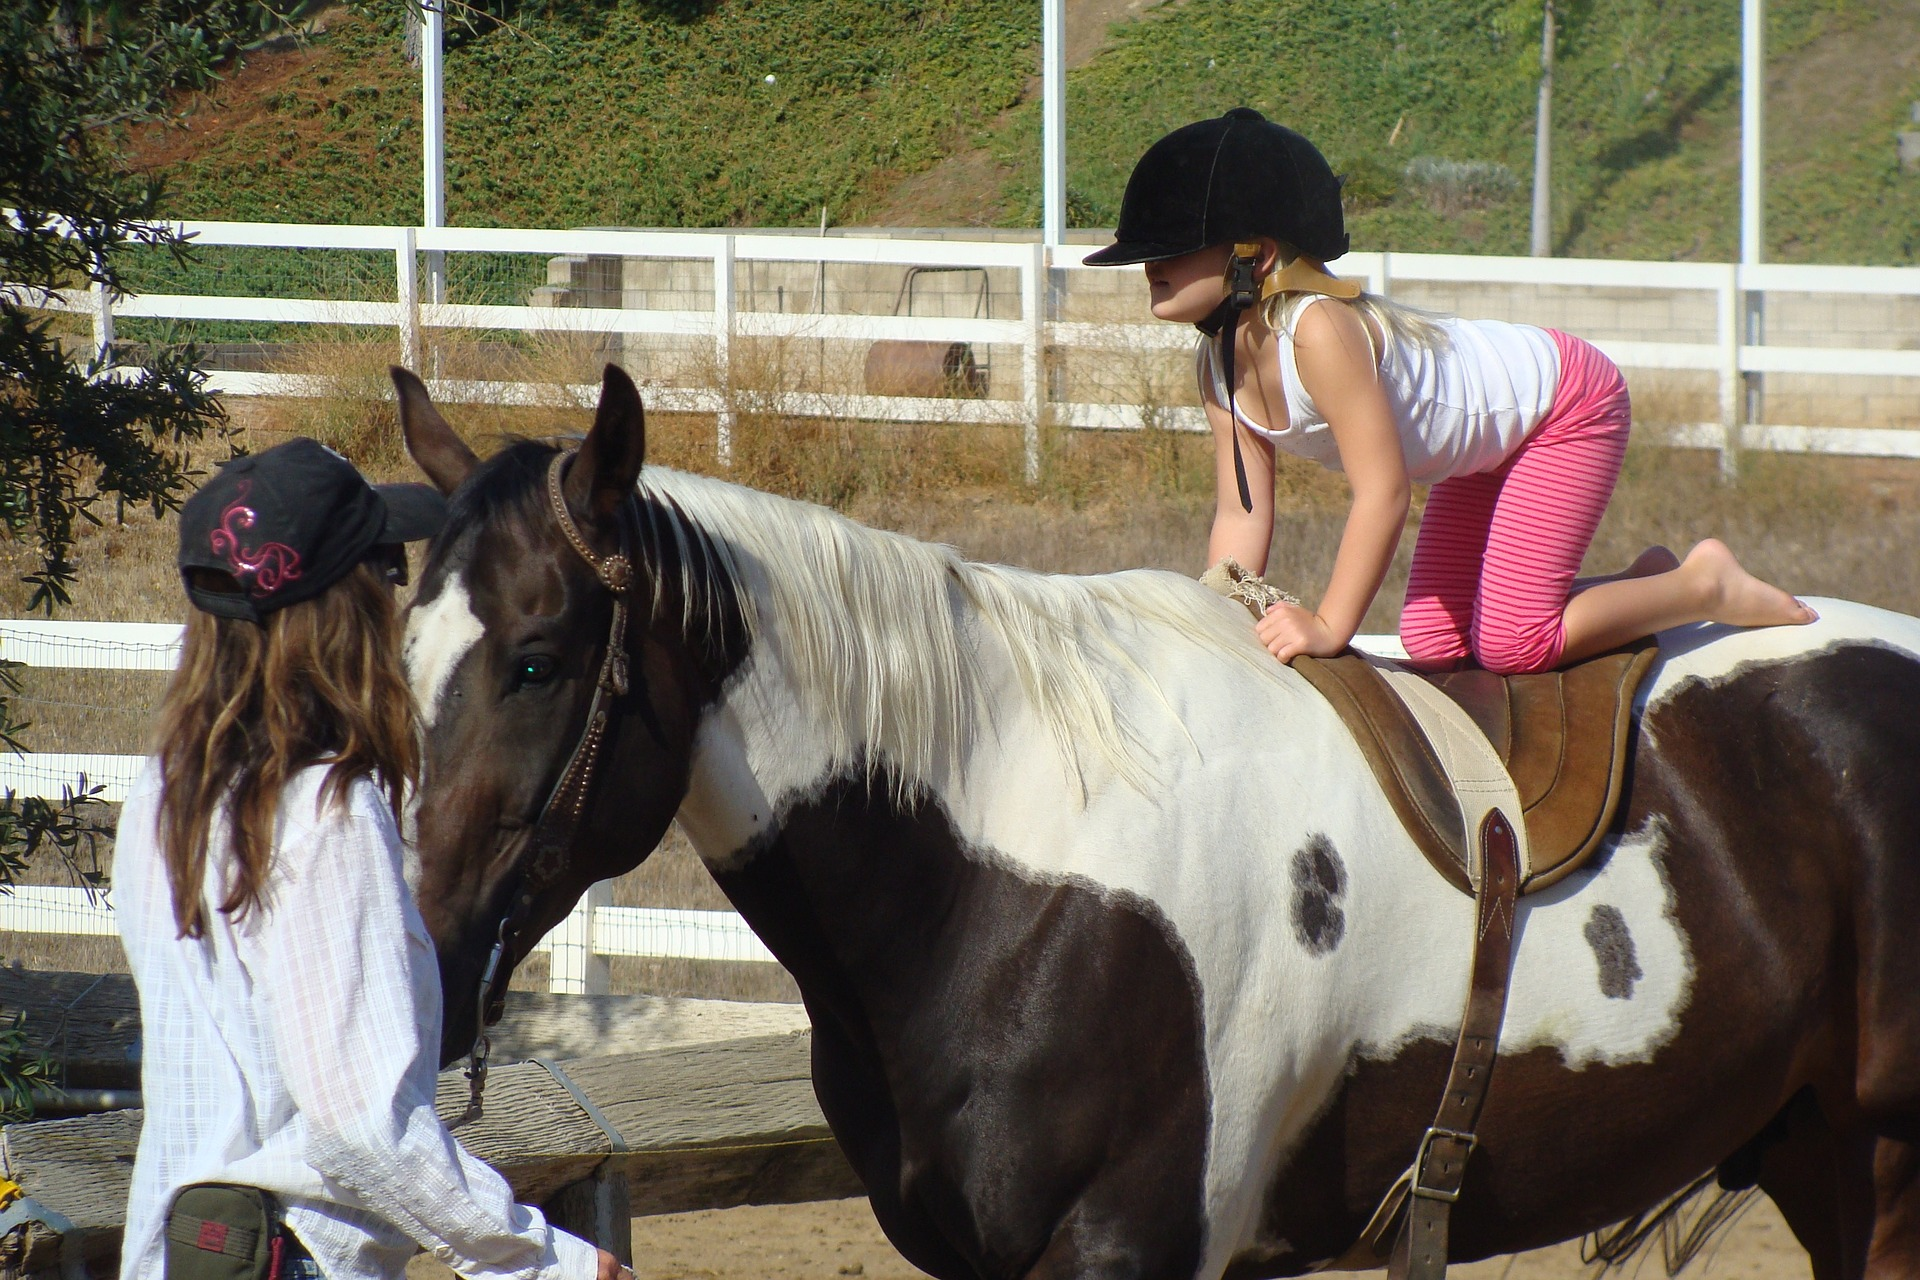 Yonge blond girl takes a riding lesson on paint horse